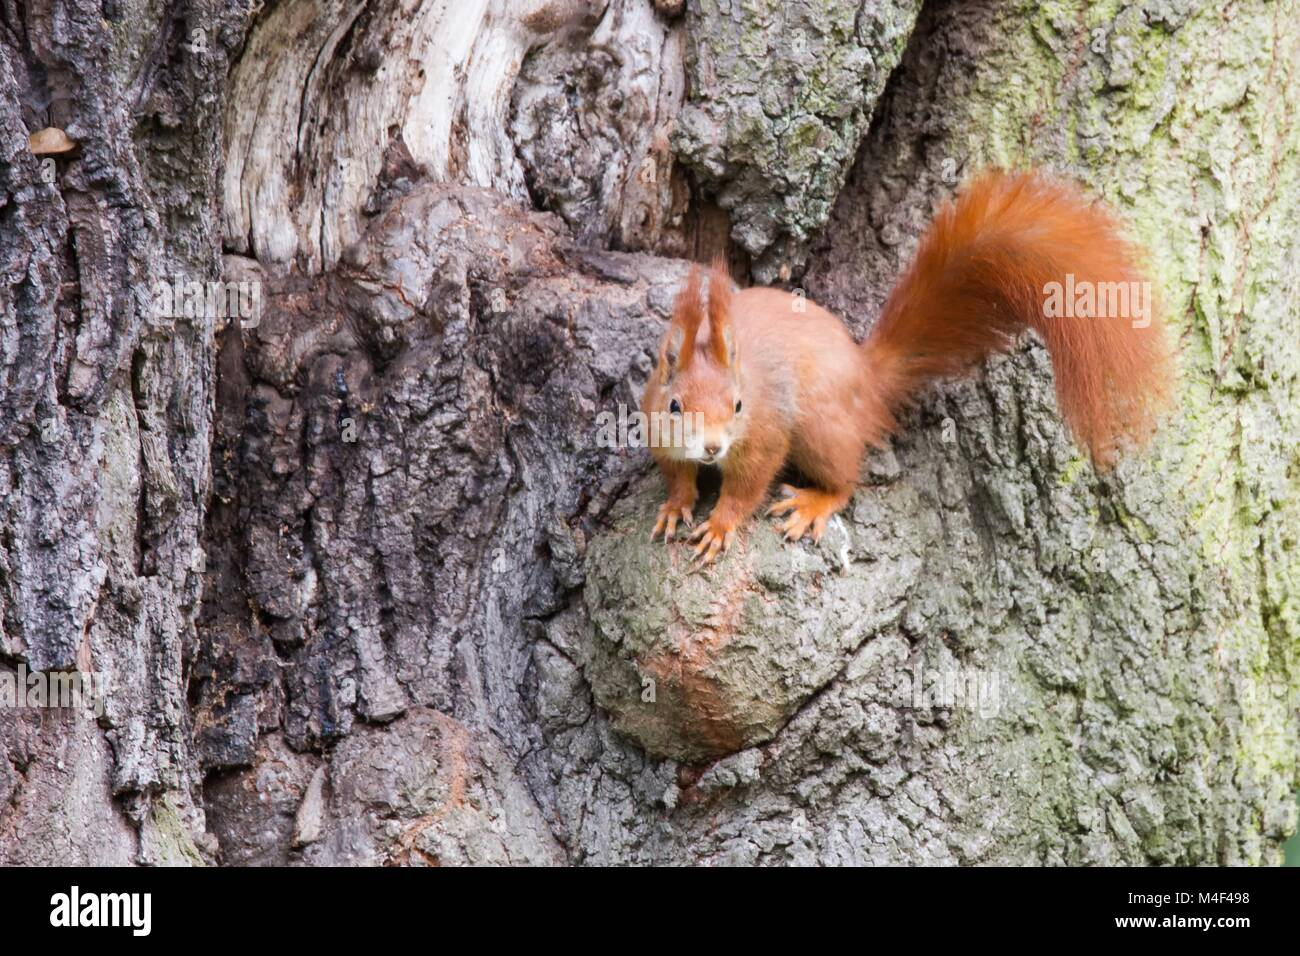 Red Squirrel 39 - Stock Image